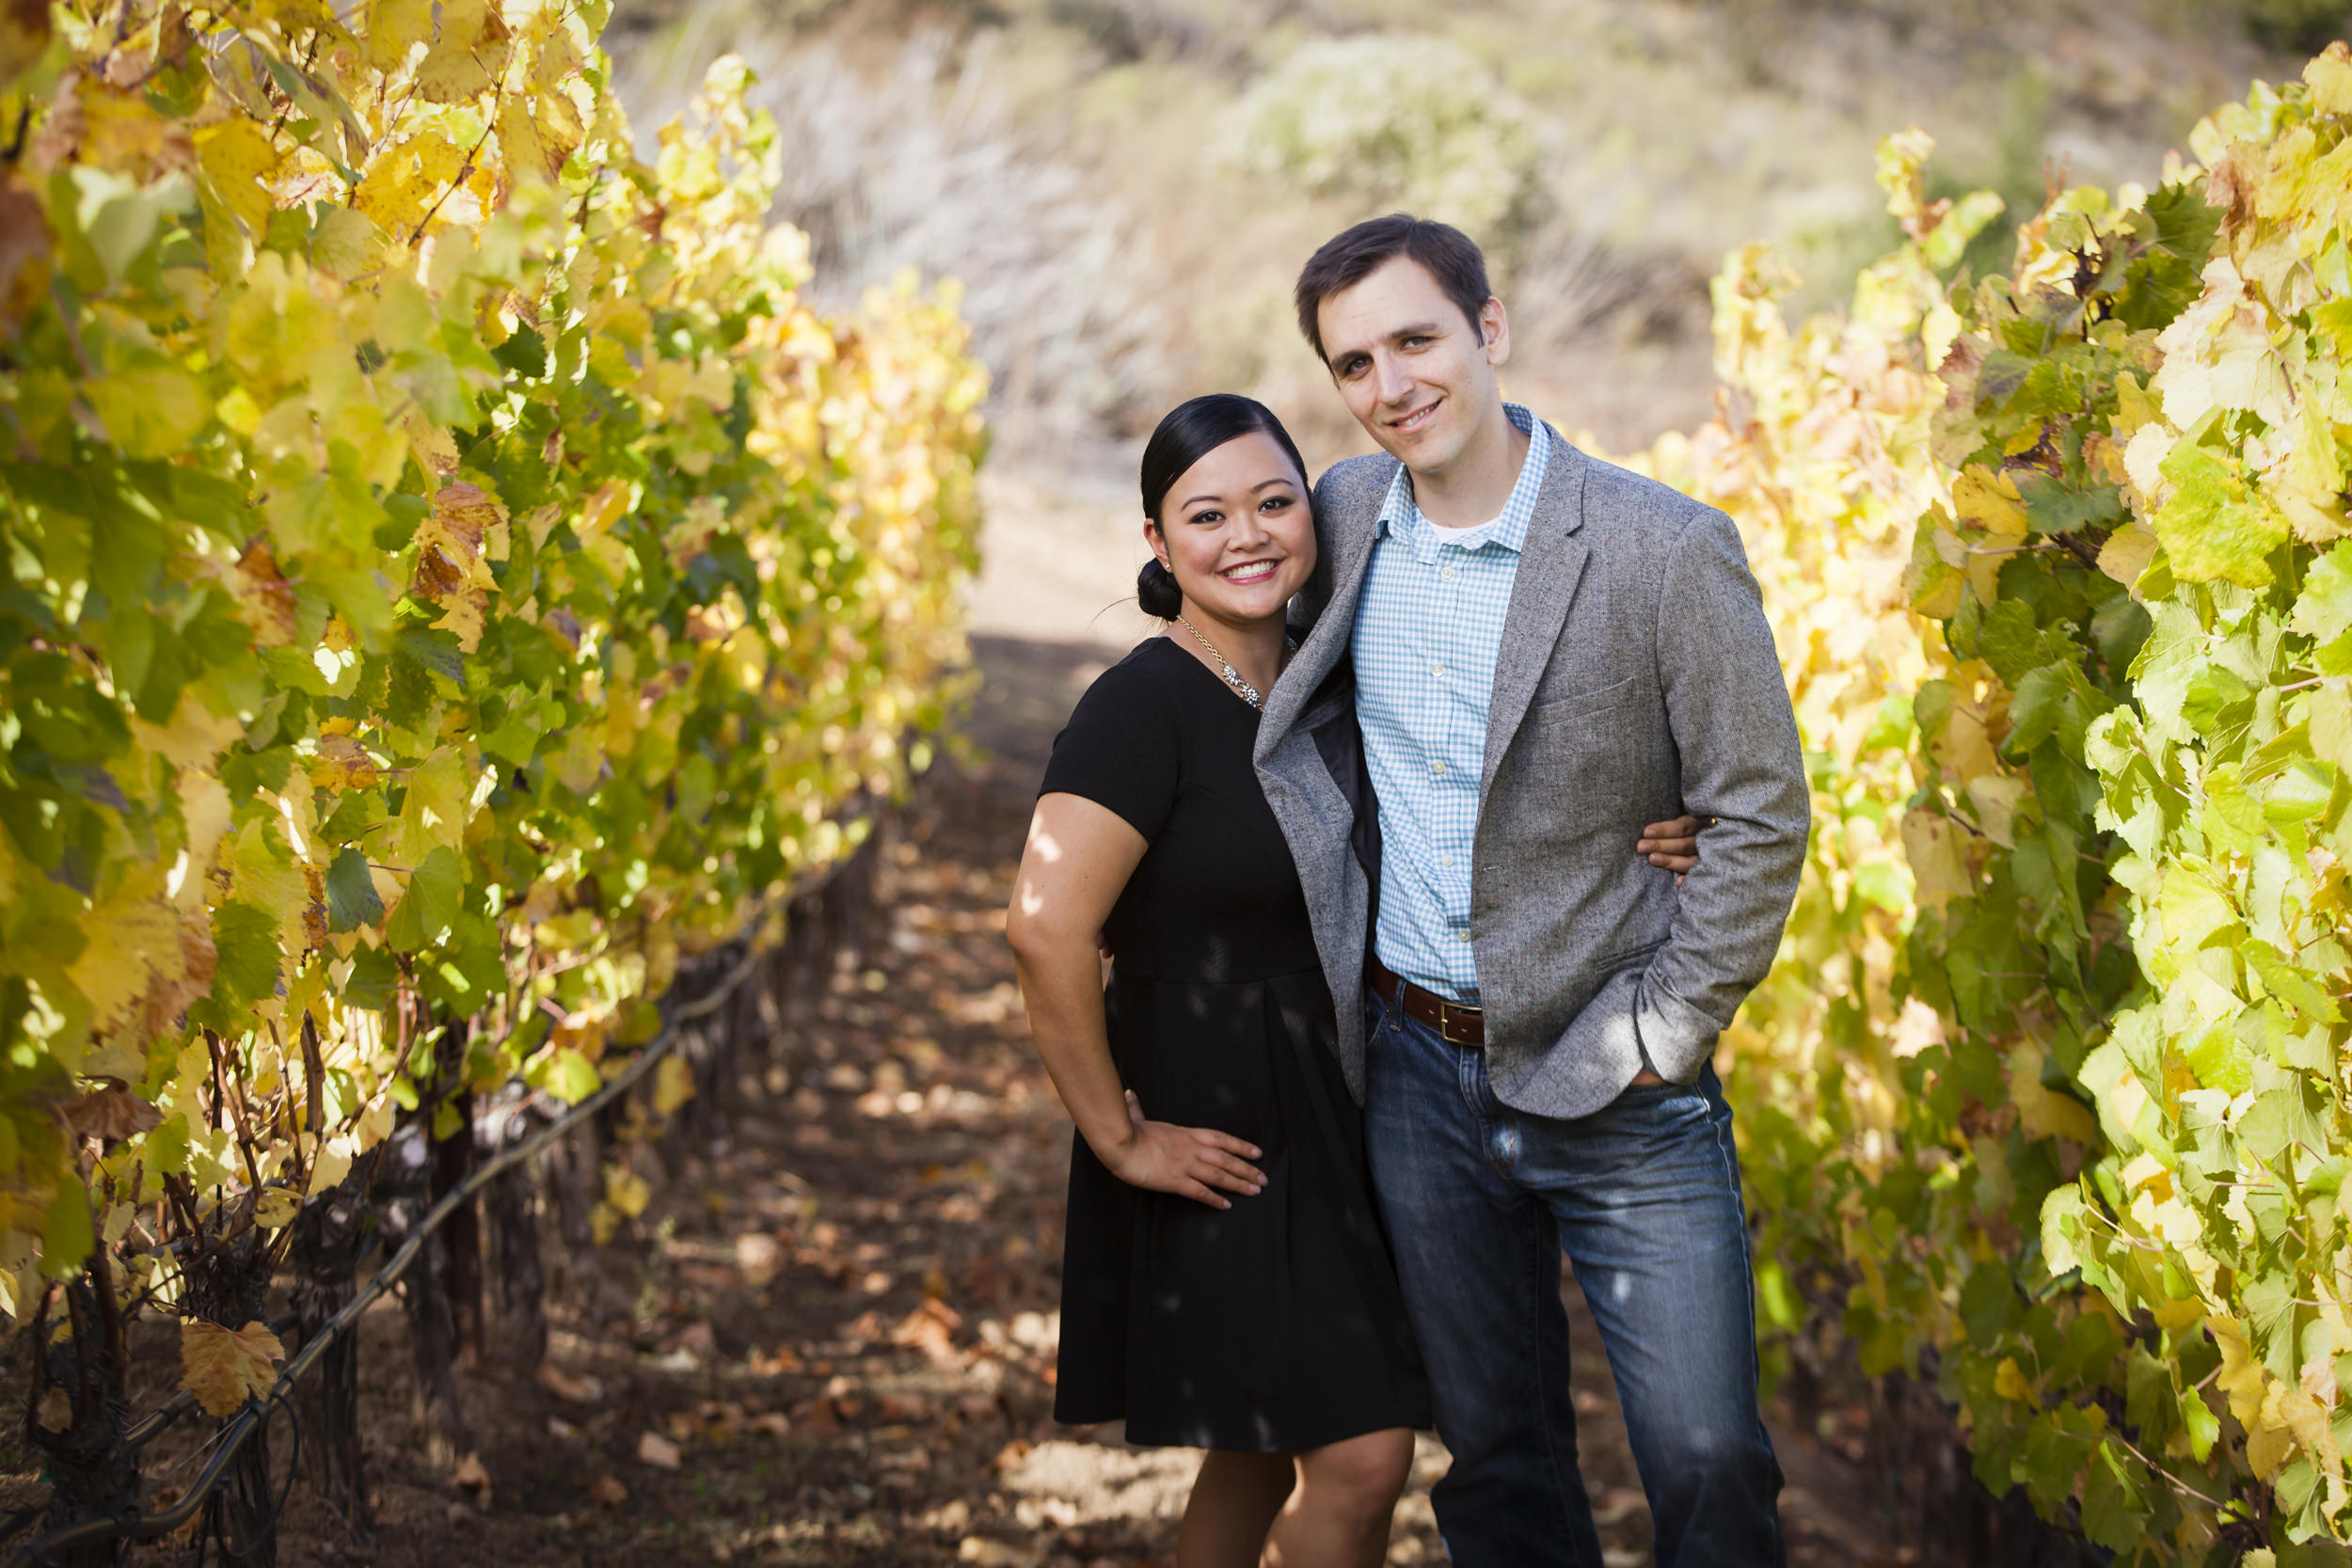 andrew-maissa-engagement-session-Mountain-Winery-1.jpg